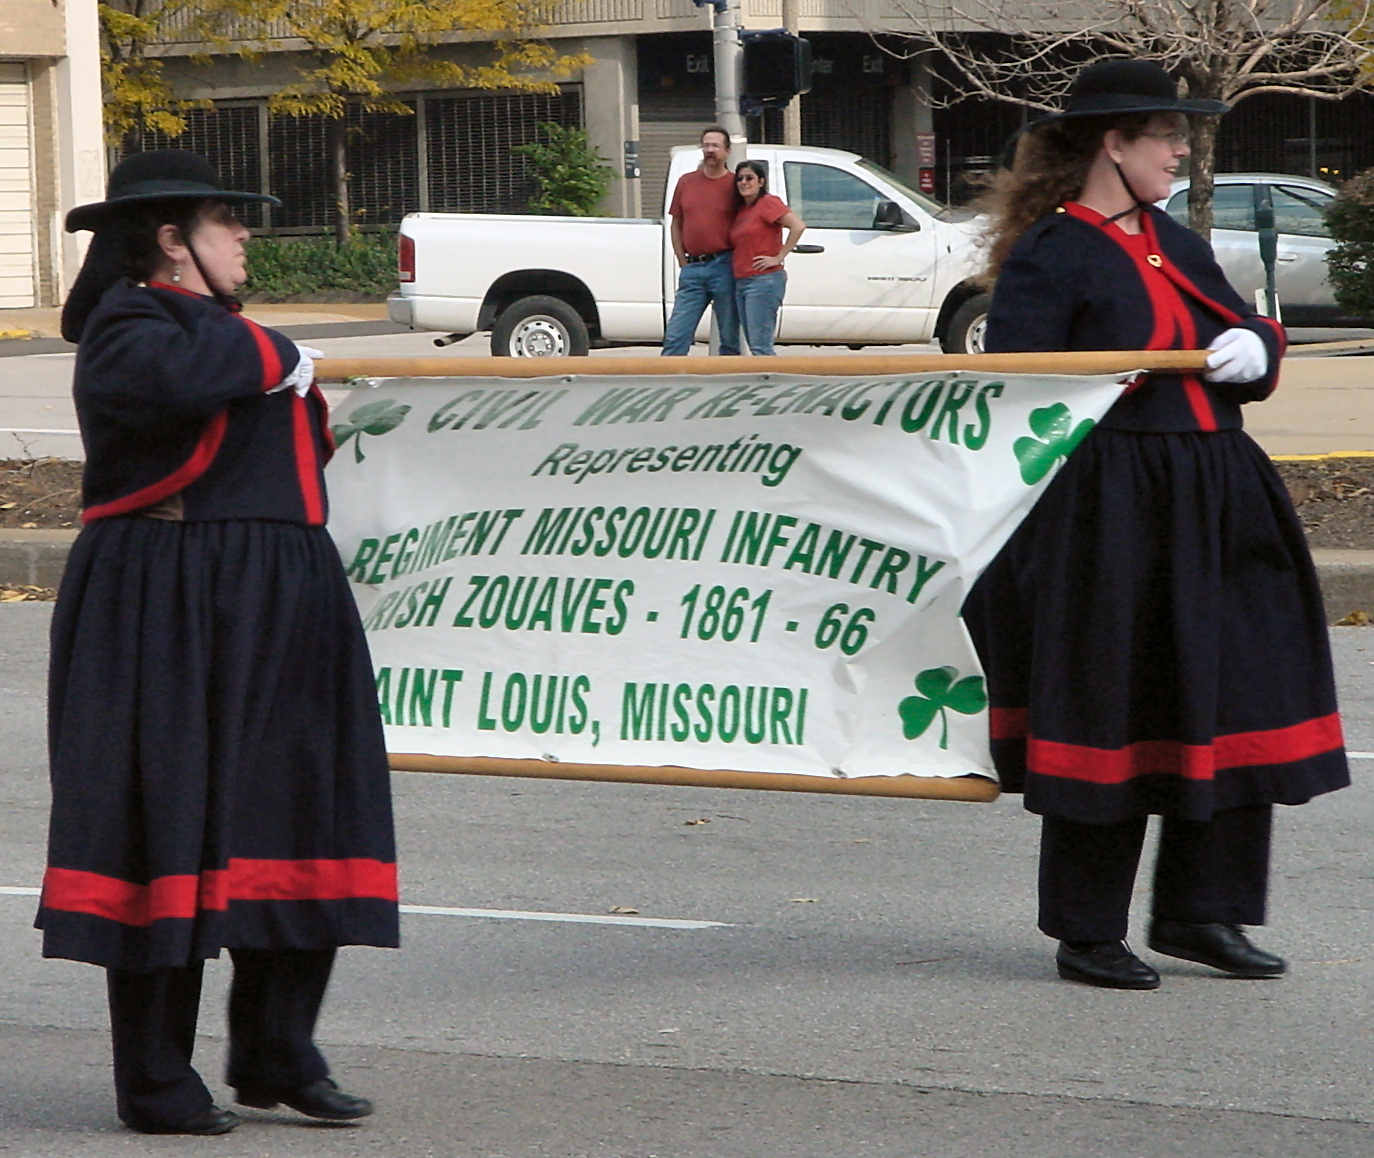 Women carrying banner in parade